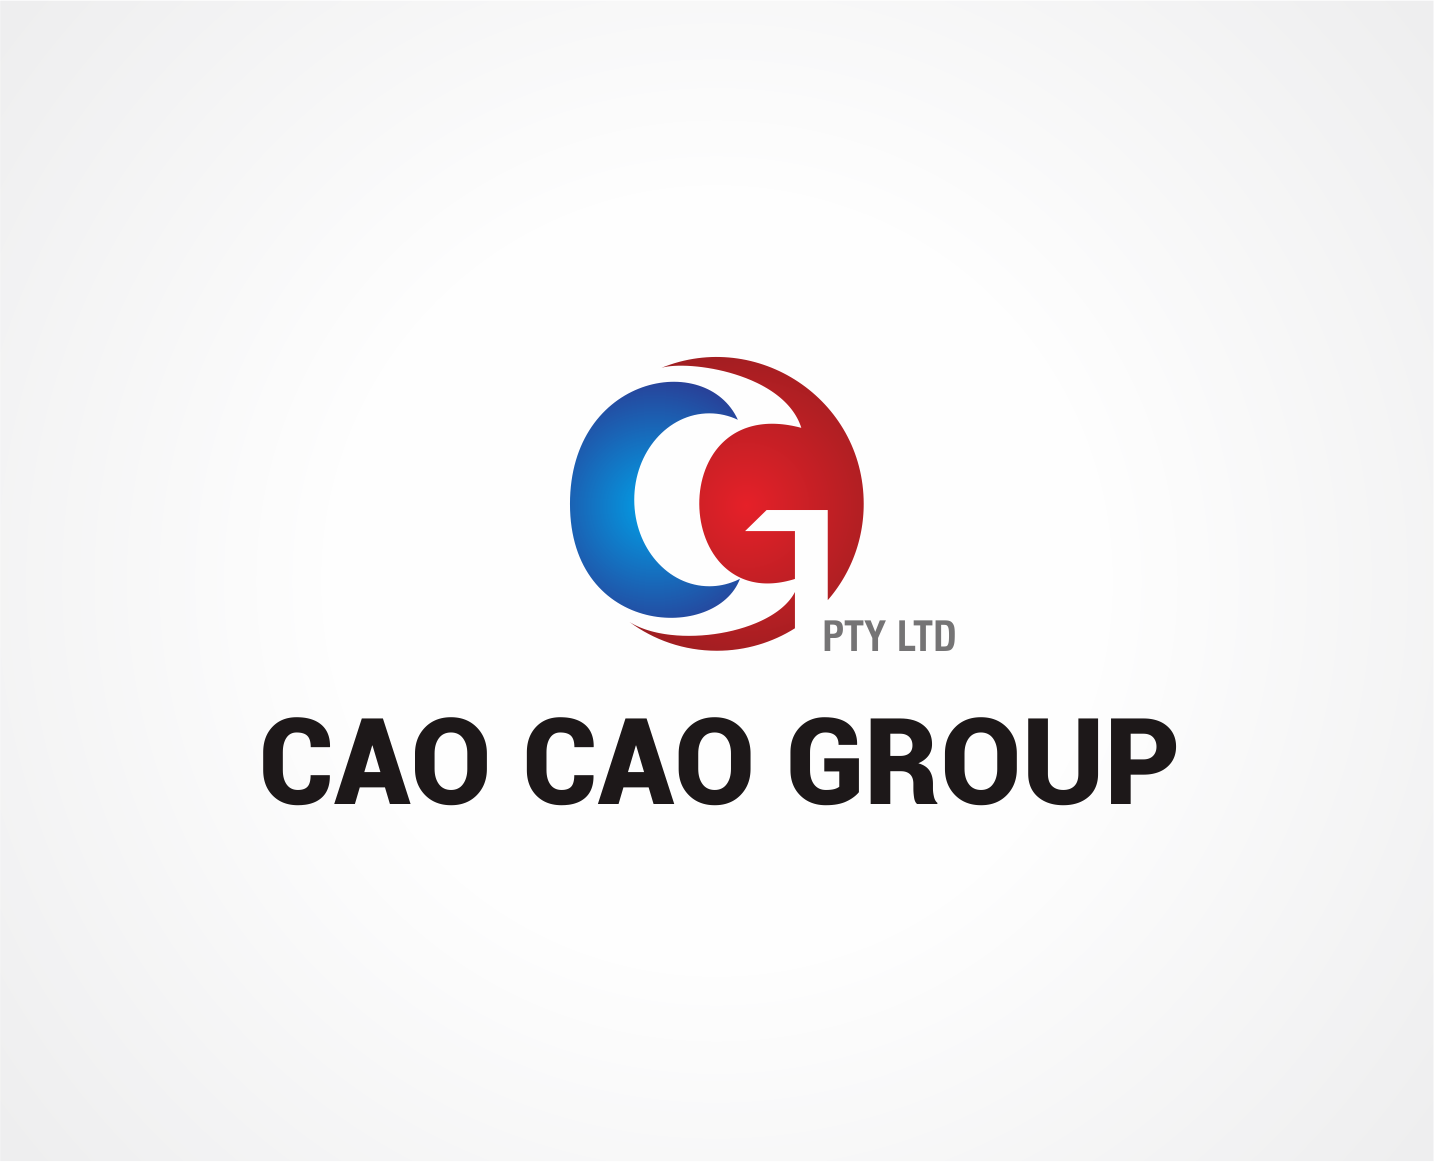 Logo Design by Armada Jamaluddin - Entry No. 111 in the Logo Design Contest cao cao group pty ltd Logo Design.